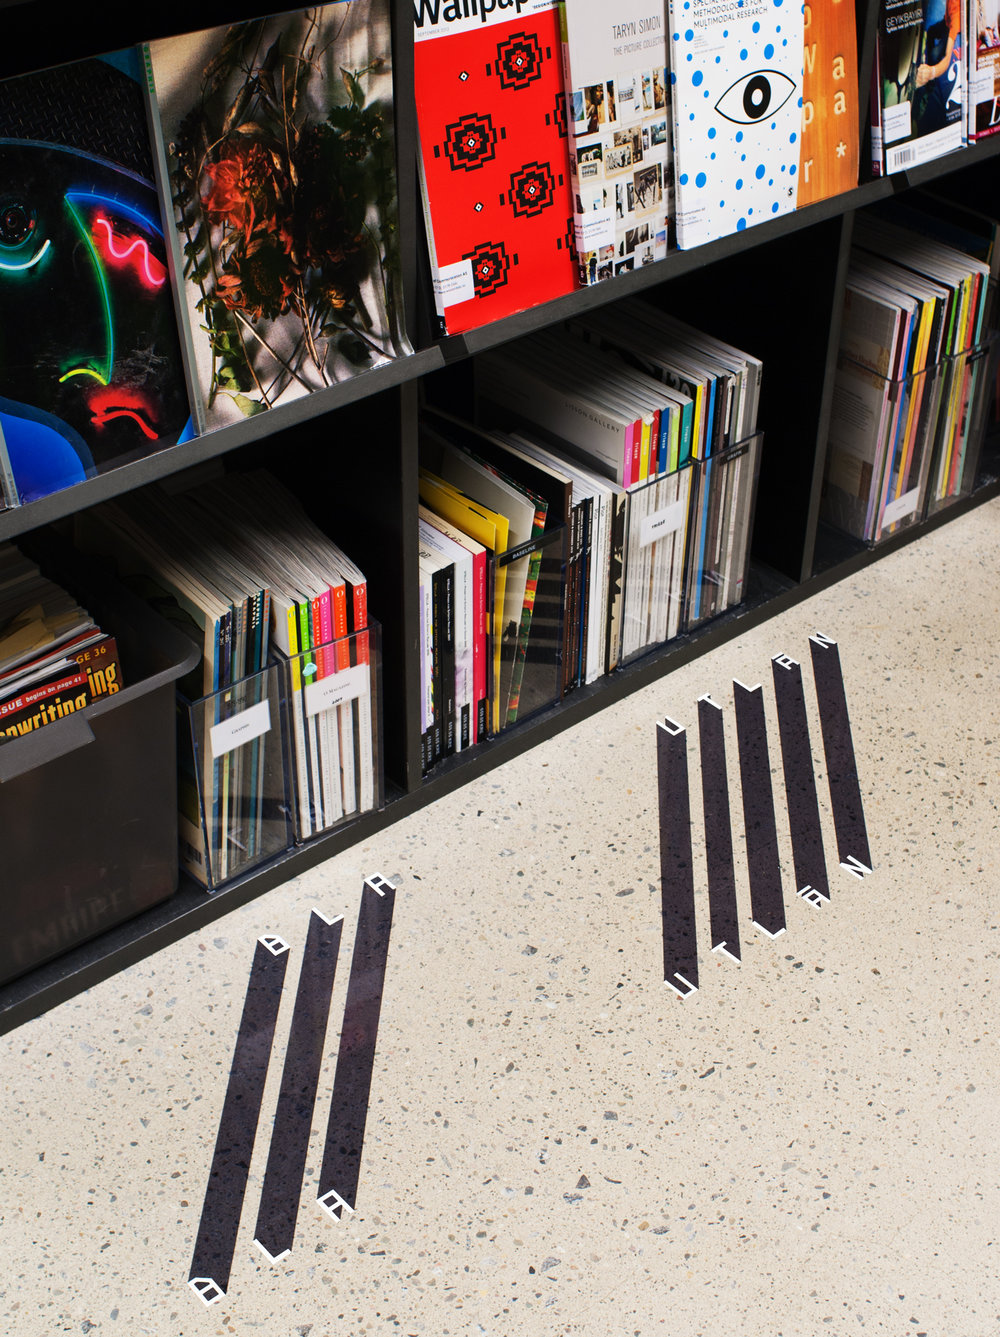 → Marking of the Dewey system according to book placement